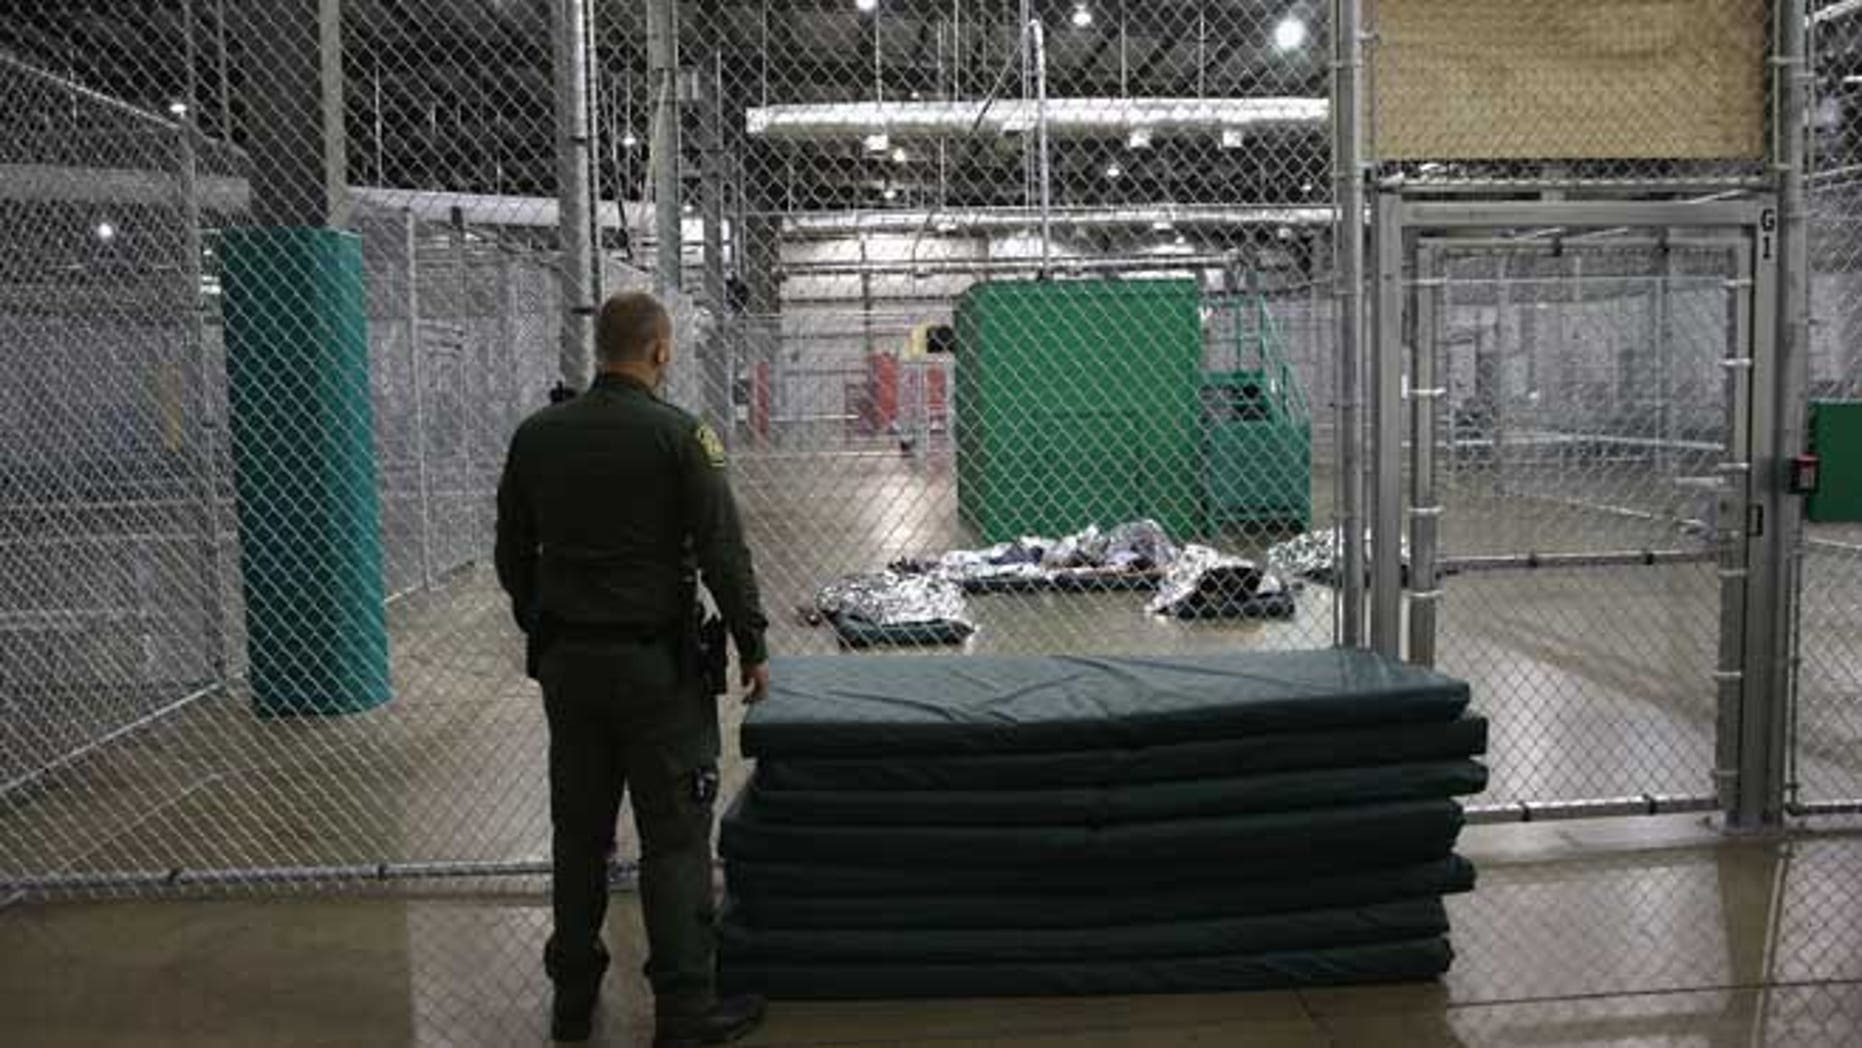 A detention facility run by the Border Patrol on September 8, 2014 in McAllen, Texas. (Photo by John Moore/Getty Images)